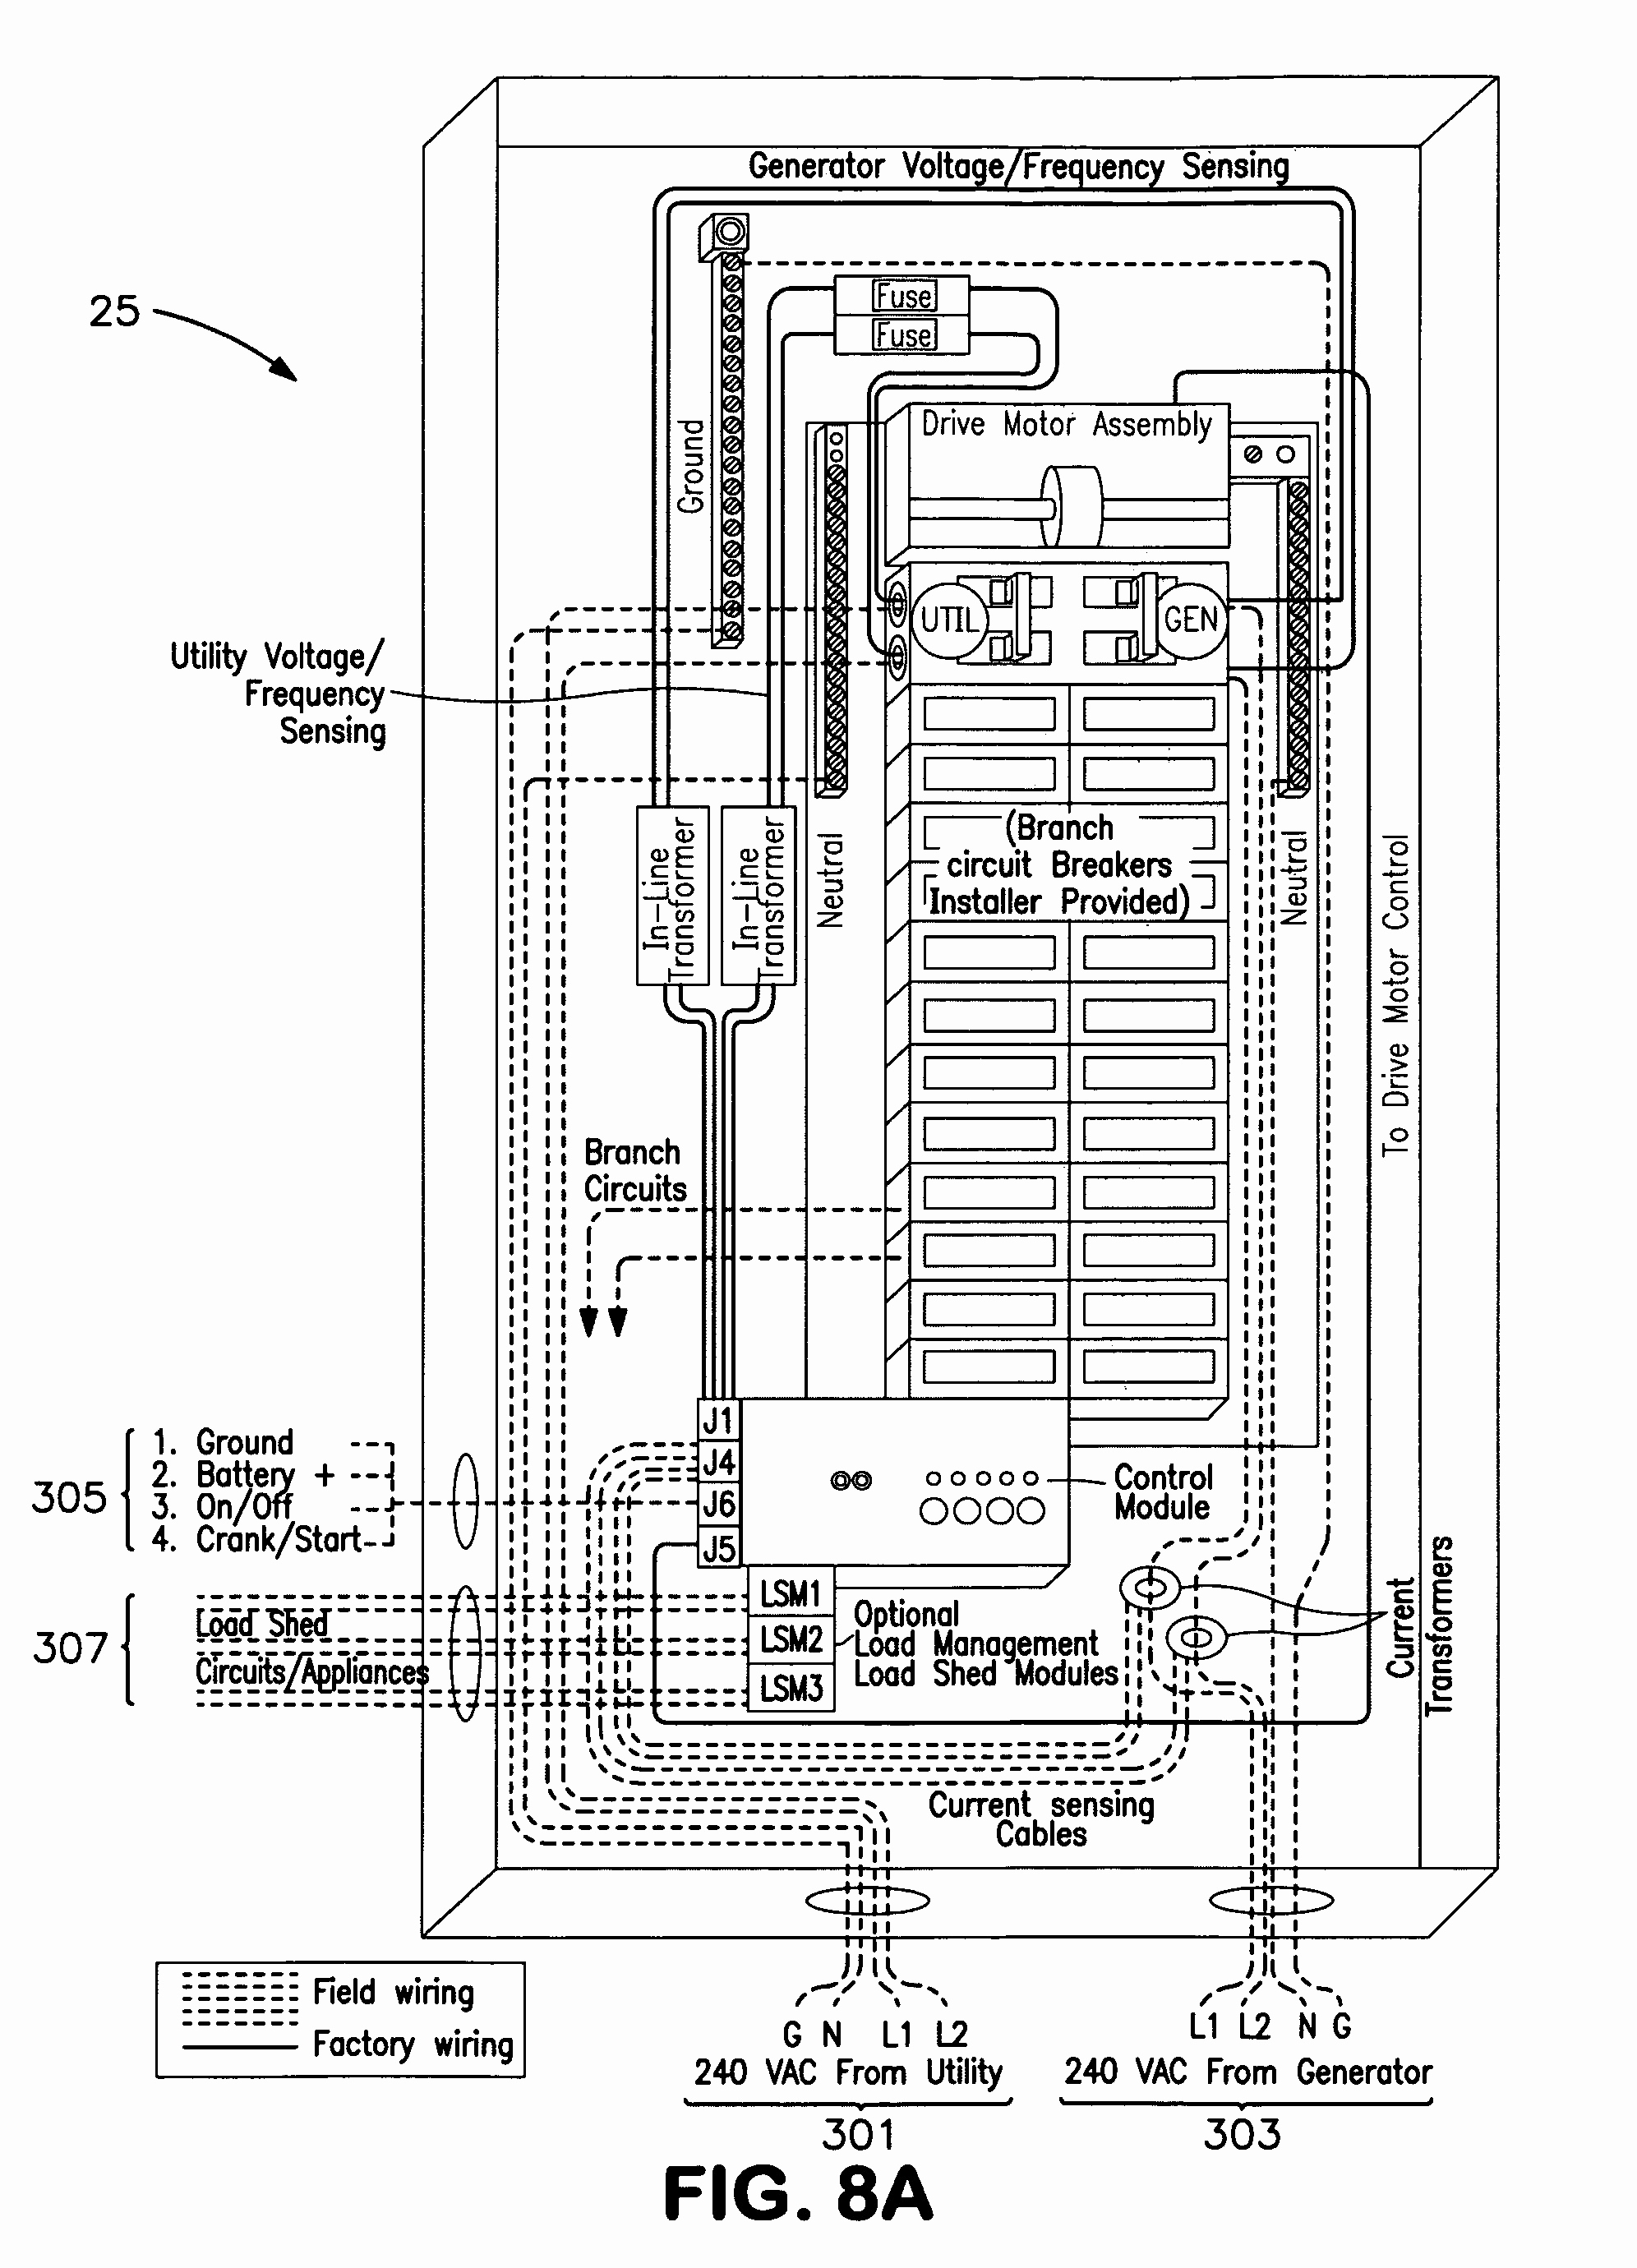 generac wiring diagram Collection-Generac Automatic Transfer Switch Wiring Diagram for Generac Automatic Transfer Switch Wiring Diagram Elegant Amazing 20-g